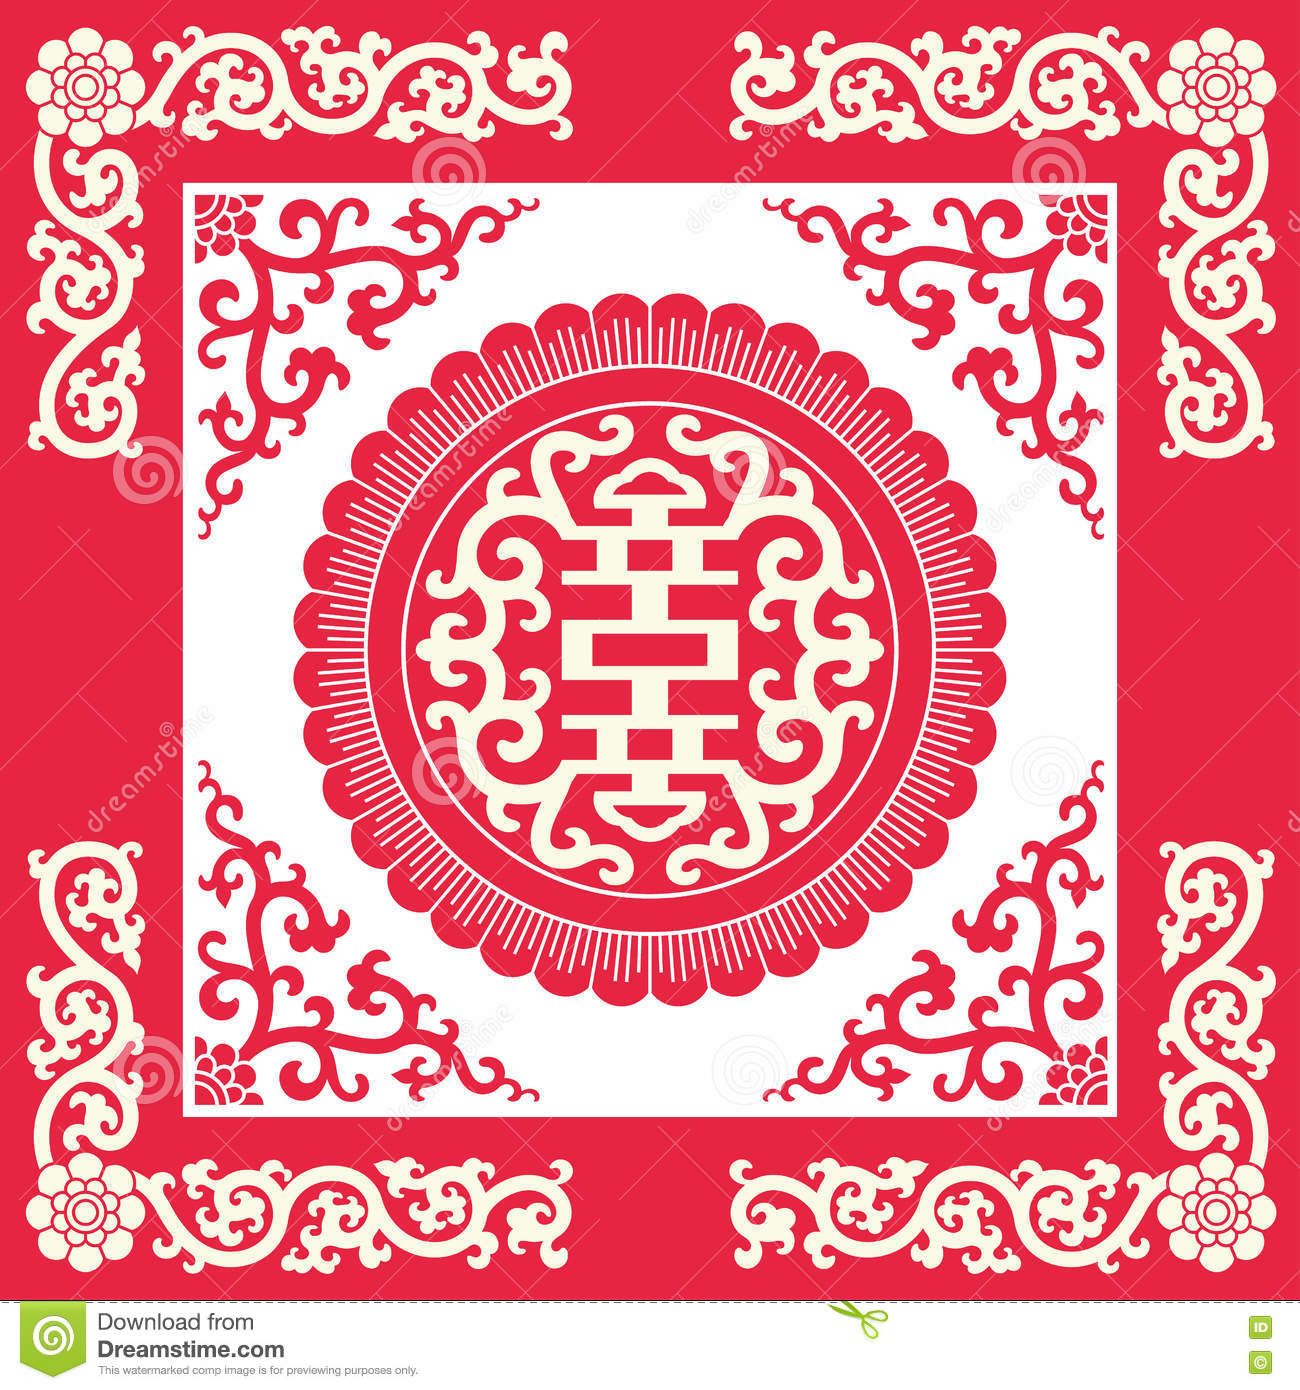 Chinese symbol health longevity stock photos 40 images longevity symbolschinese traditional pattern the central symbol is a chinese character biocorpaavc Gallery